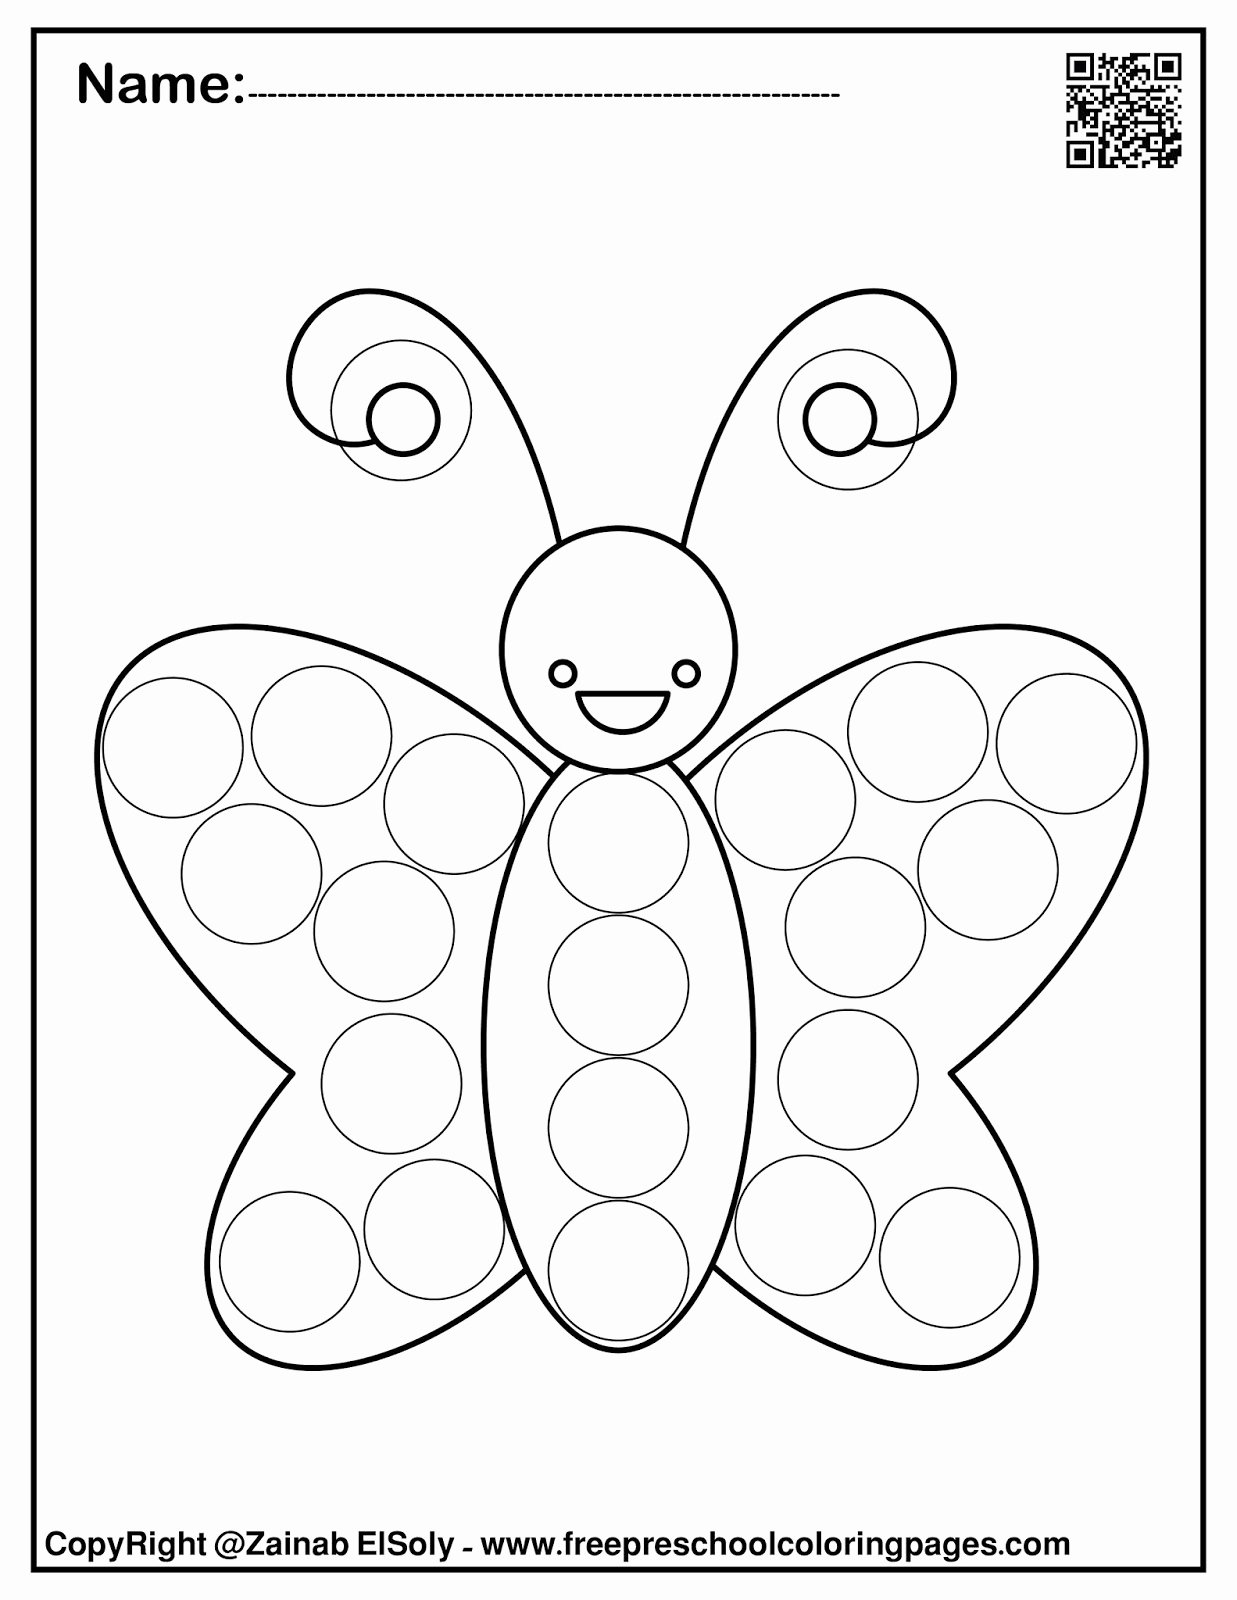 Coloring Activity Worksheets for Preschoolers top Worksheets Minute Math Answers Autism Awareness Month